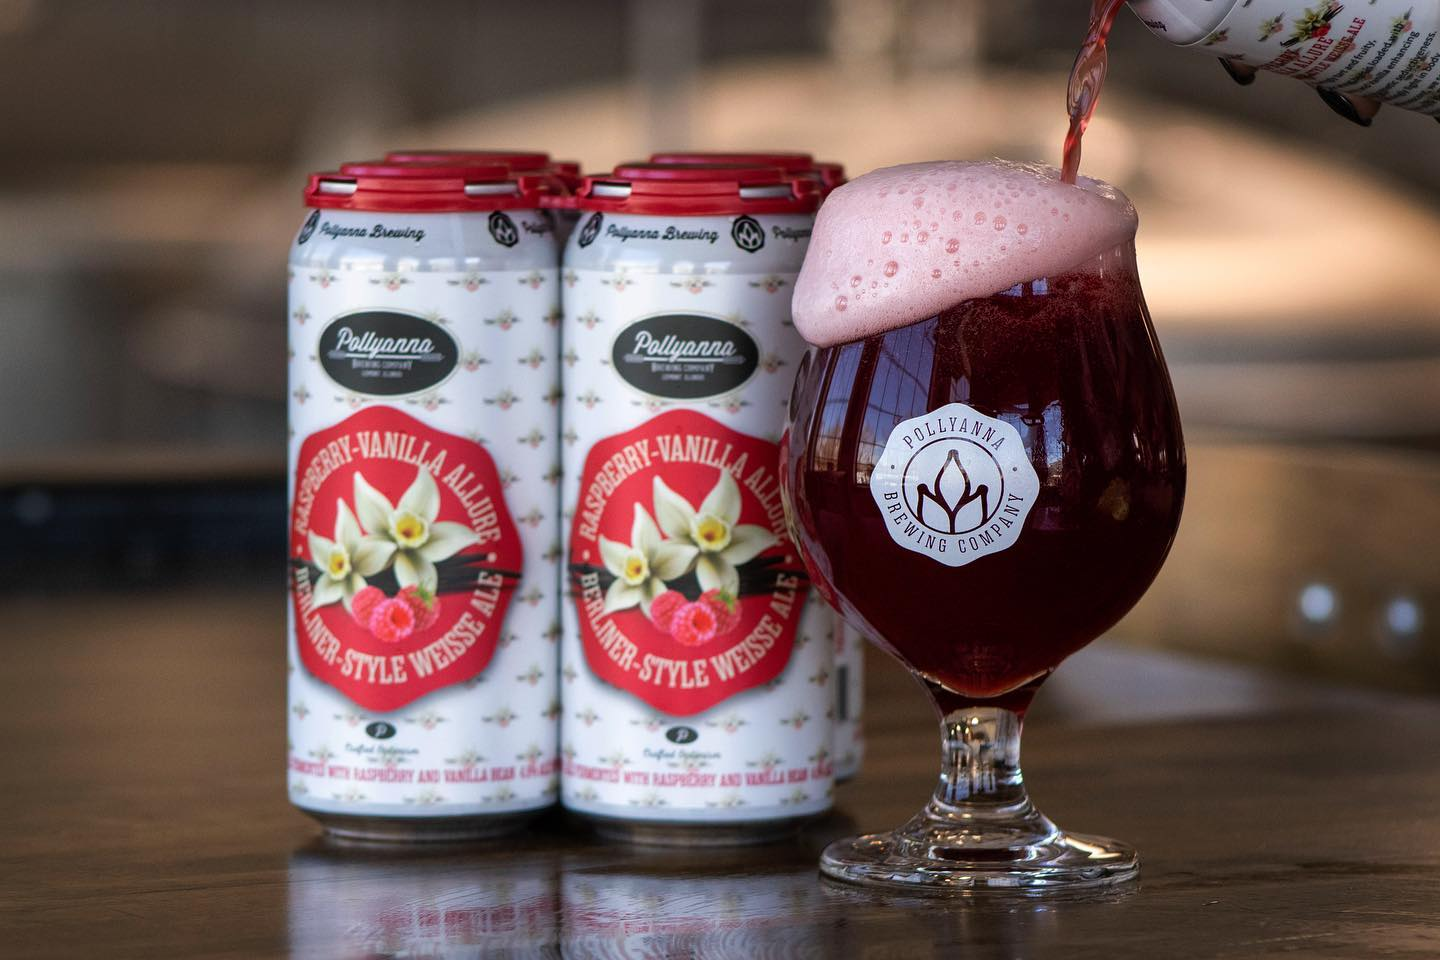 Four cans and a glass of Raspberry-Vanilla Allure from Pollyanna Brewing Company